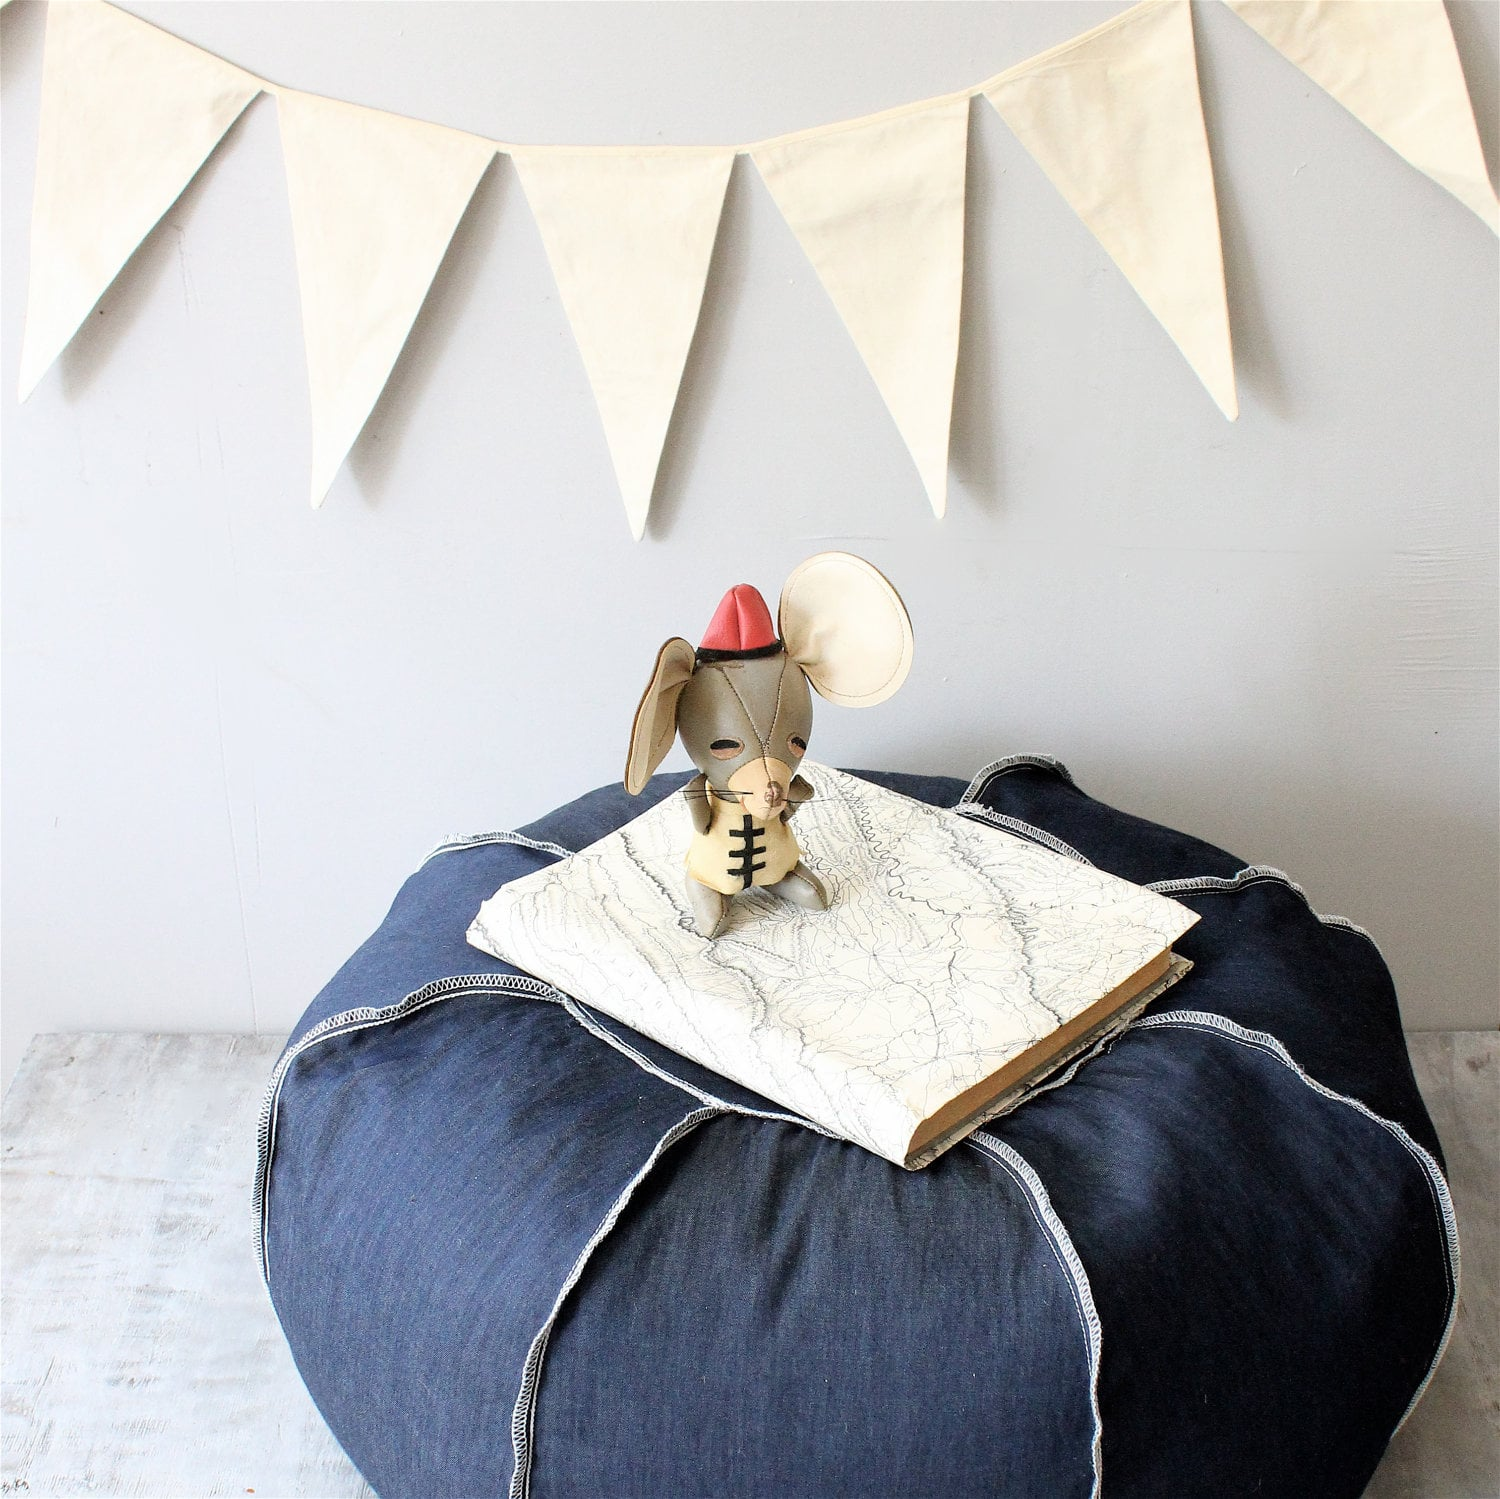 Denim ottomans 221 upcycling ideas that will blow your for Jeans upcycling ideas